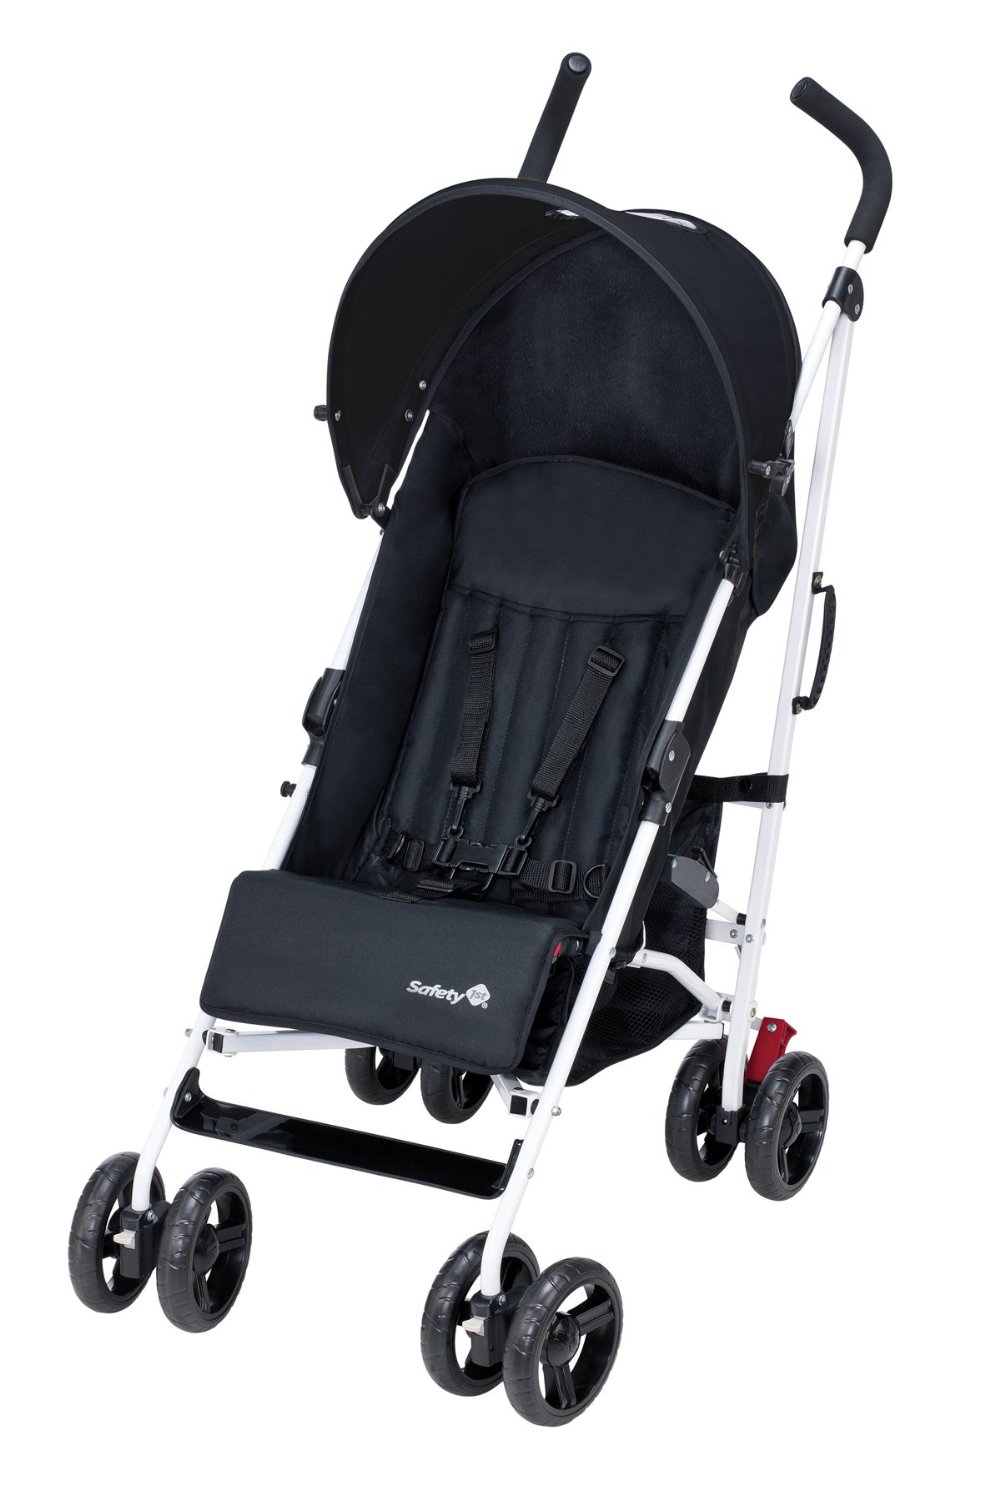 Safety 1st Canne Slim Poussette